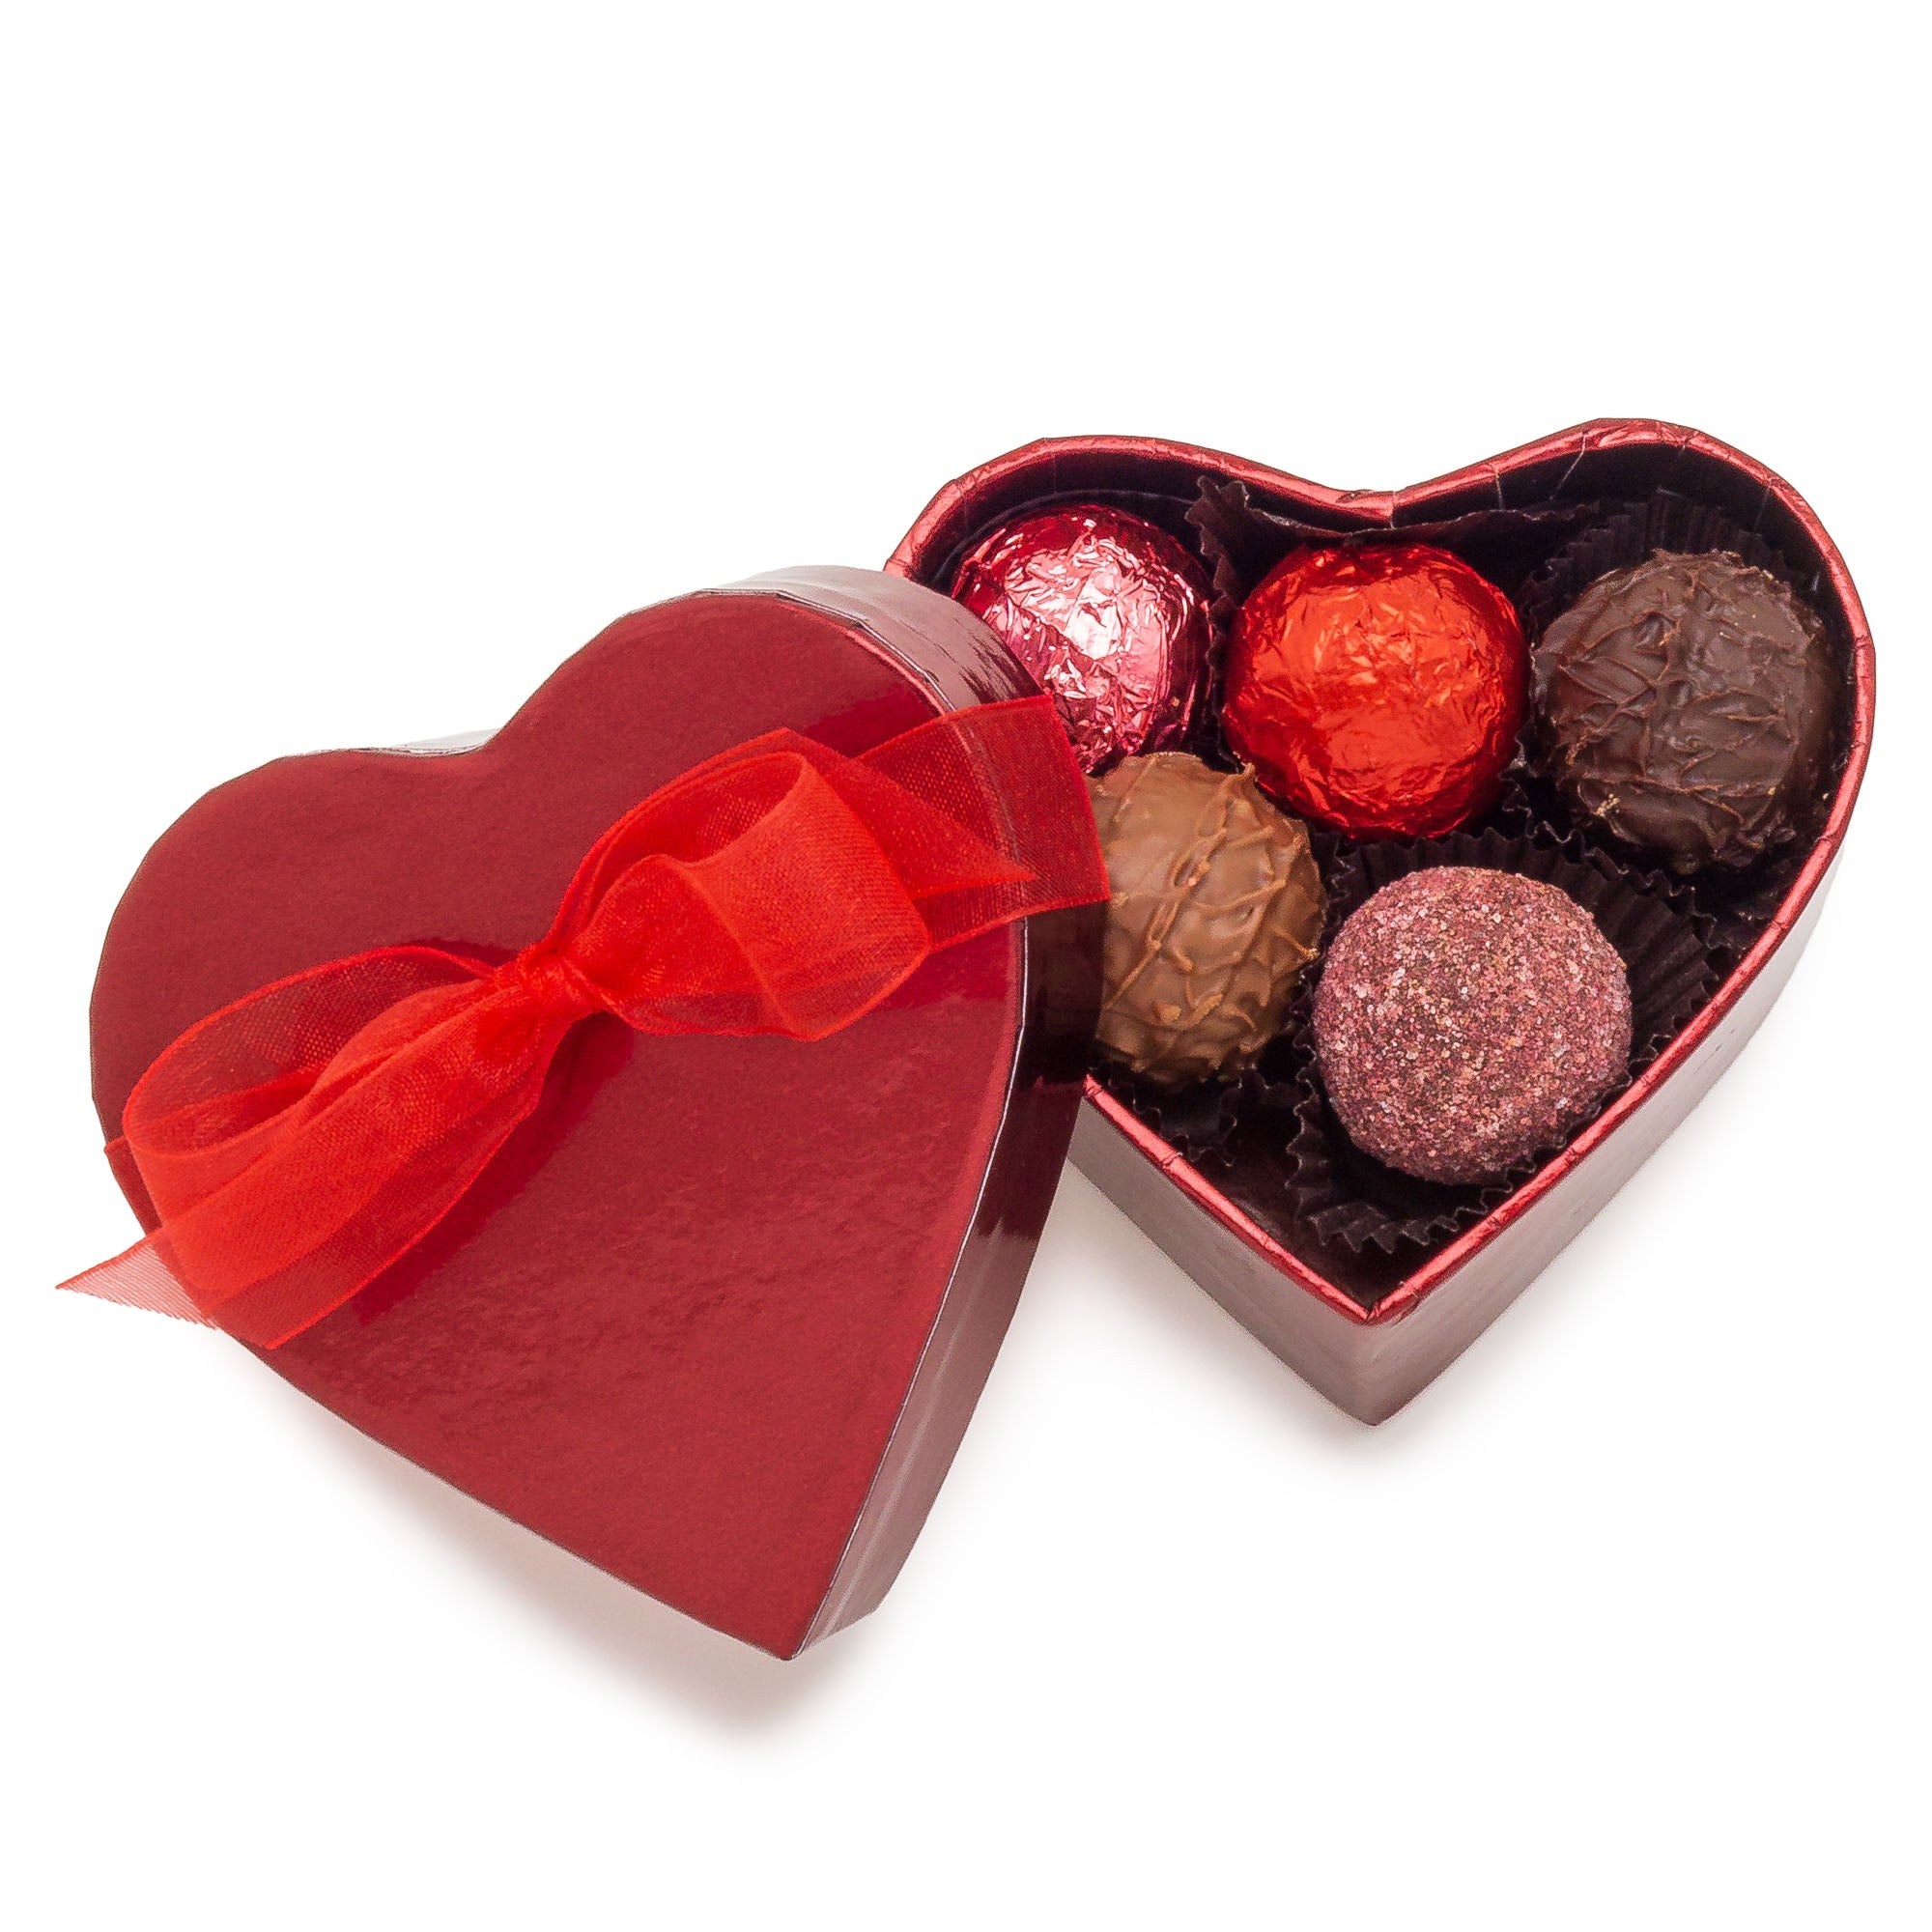 Valentine Heart Shaped Box Selection Maison André S Confiserie Suisse